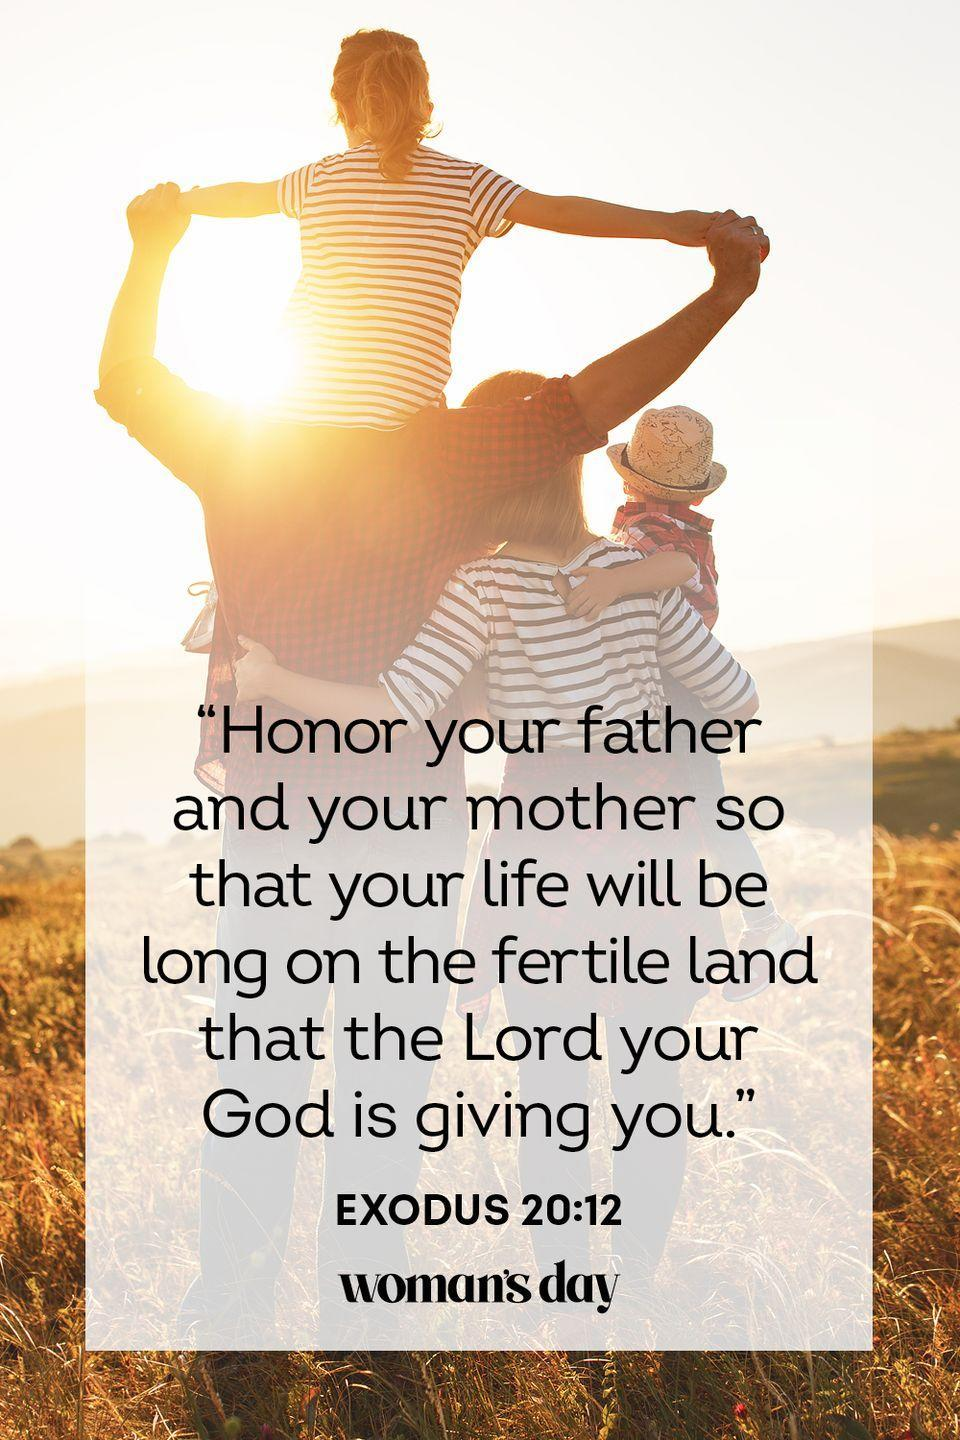 """<p>""""Honor your father and your mother so that your life will be long on the fertile land that the Lord your God is giving you."""" — Exodus 20:12</p><p><strong>The Good News: </strong>Appreciate the days that God has given you and show him your devotion by honoring the gift that he gave you: your mother and father.</p>"""